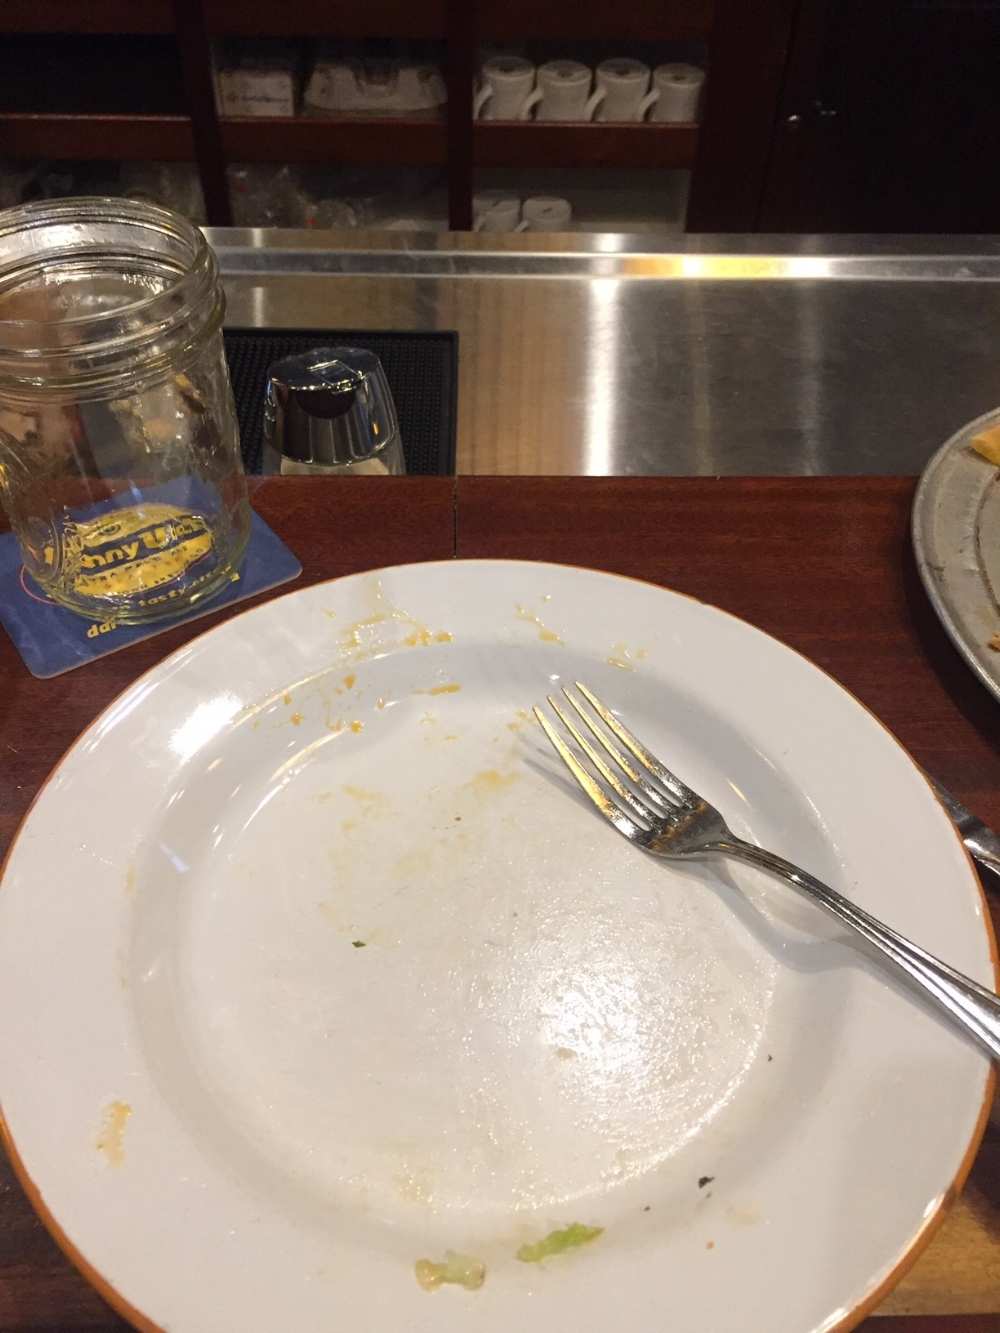 I'm a member of the clean plate club!